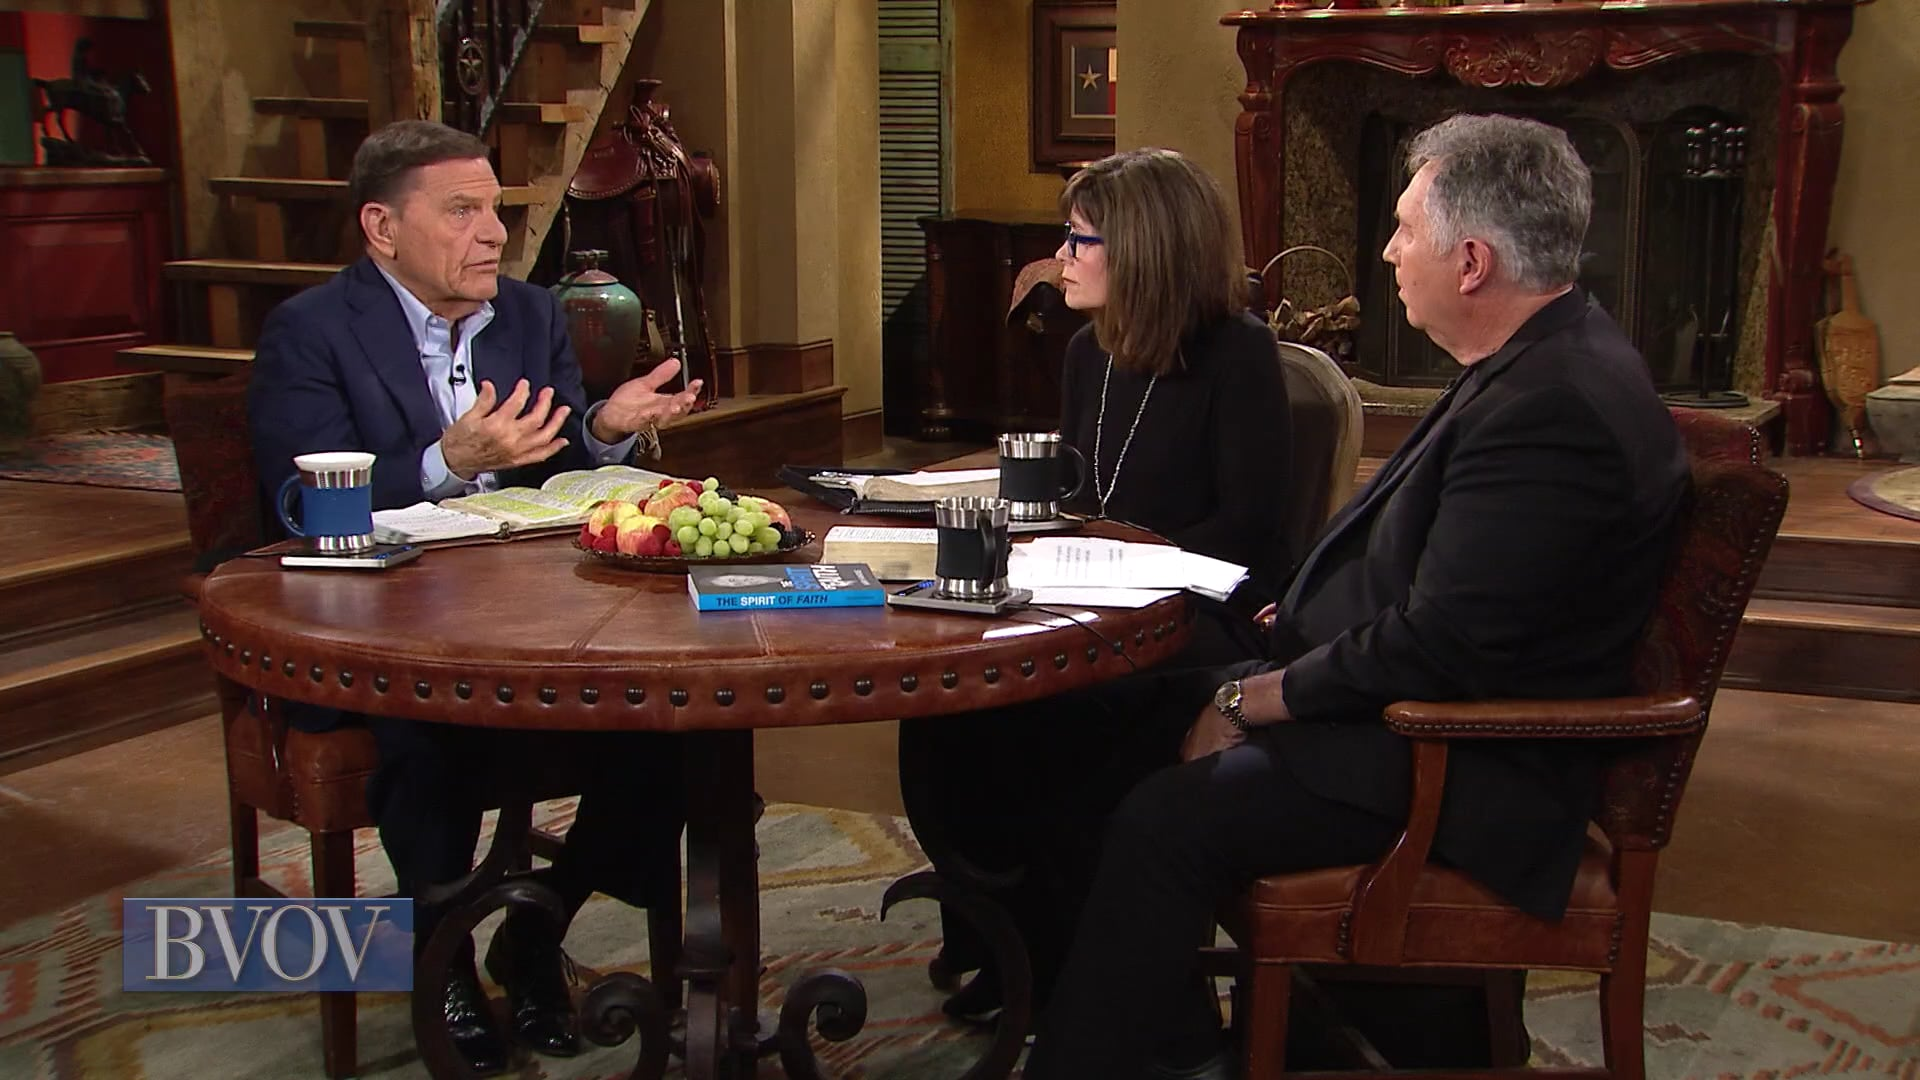 The spirit of faith is the fire of faith! Join Kenneth Copeland, with Mark and Trina Hankins, on Believer's Voice of Victory as they discuss why the spirit of faith will cause you to believe, speak and act in a way that always sees the victory. Whether you feel like it or not, you have the spirit of faith inside you!